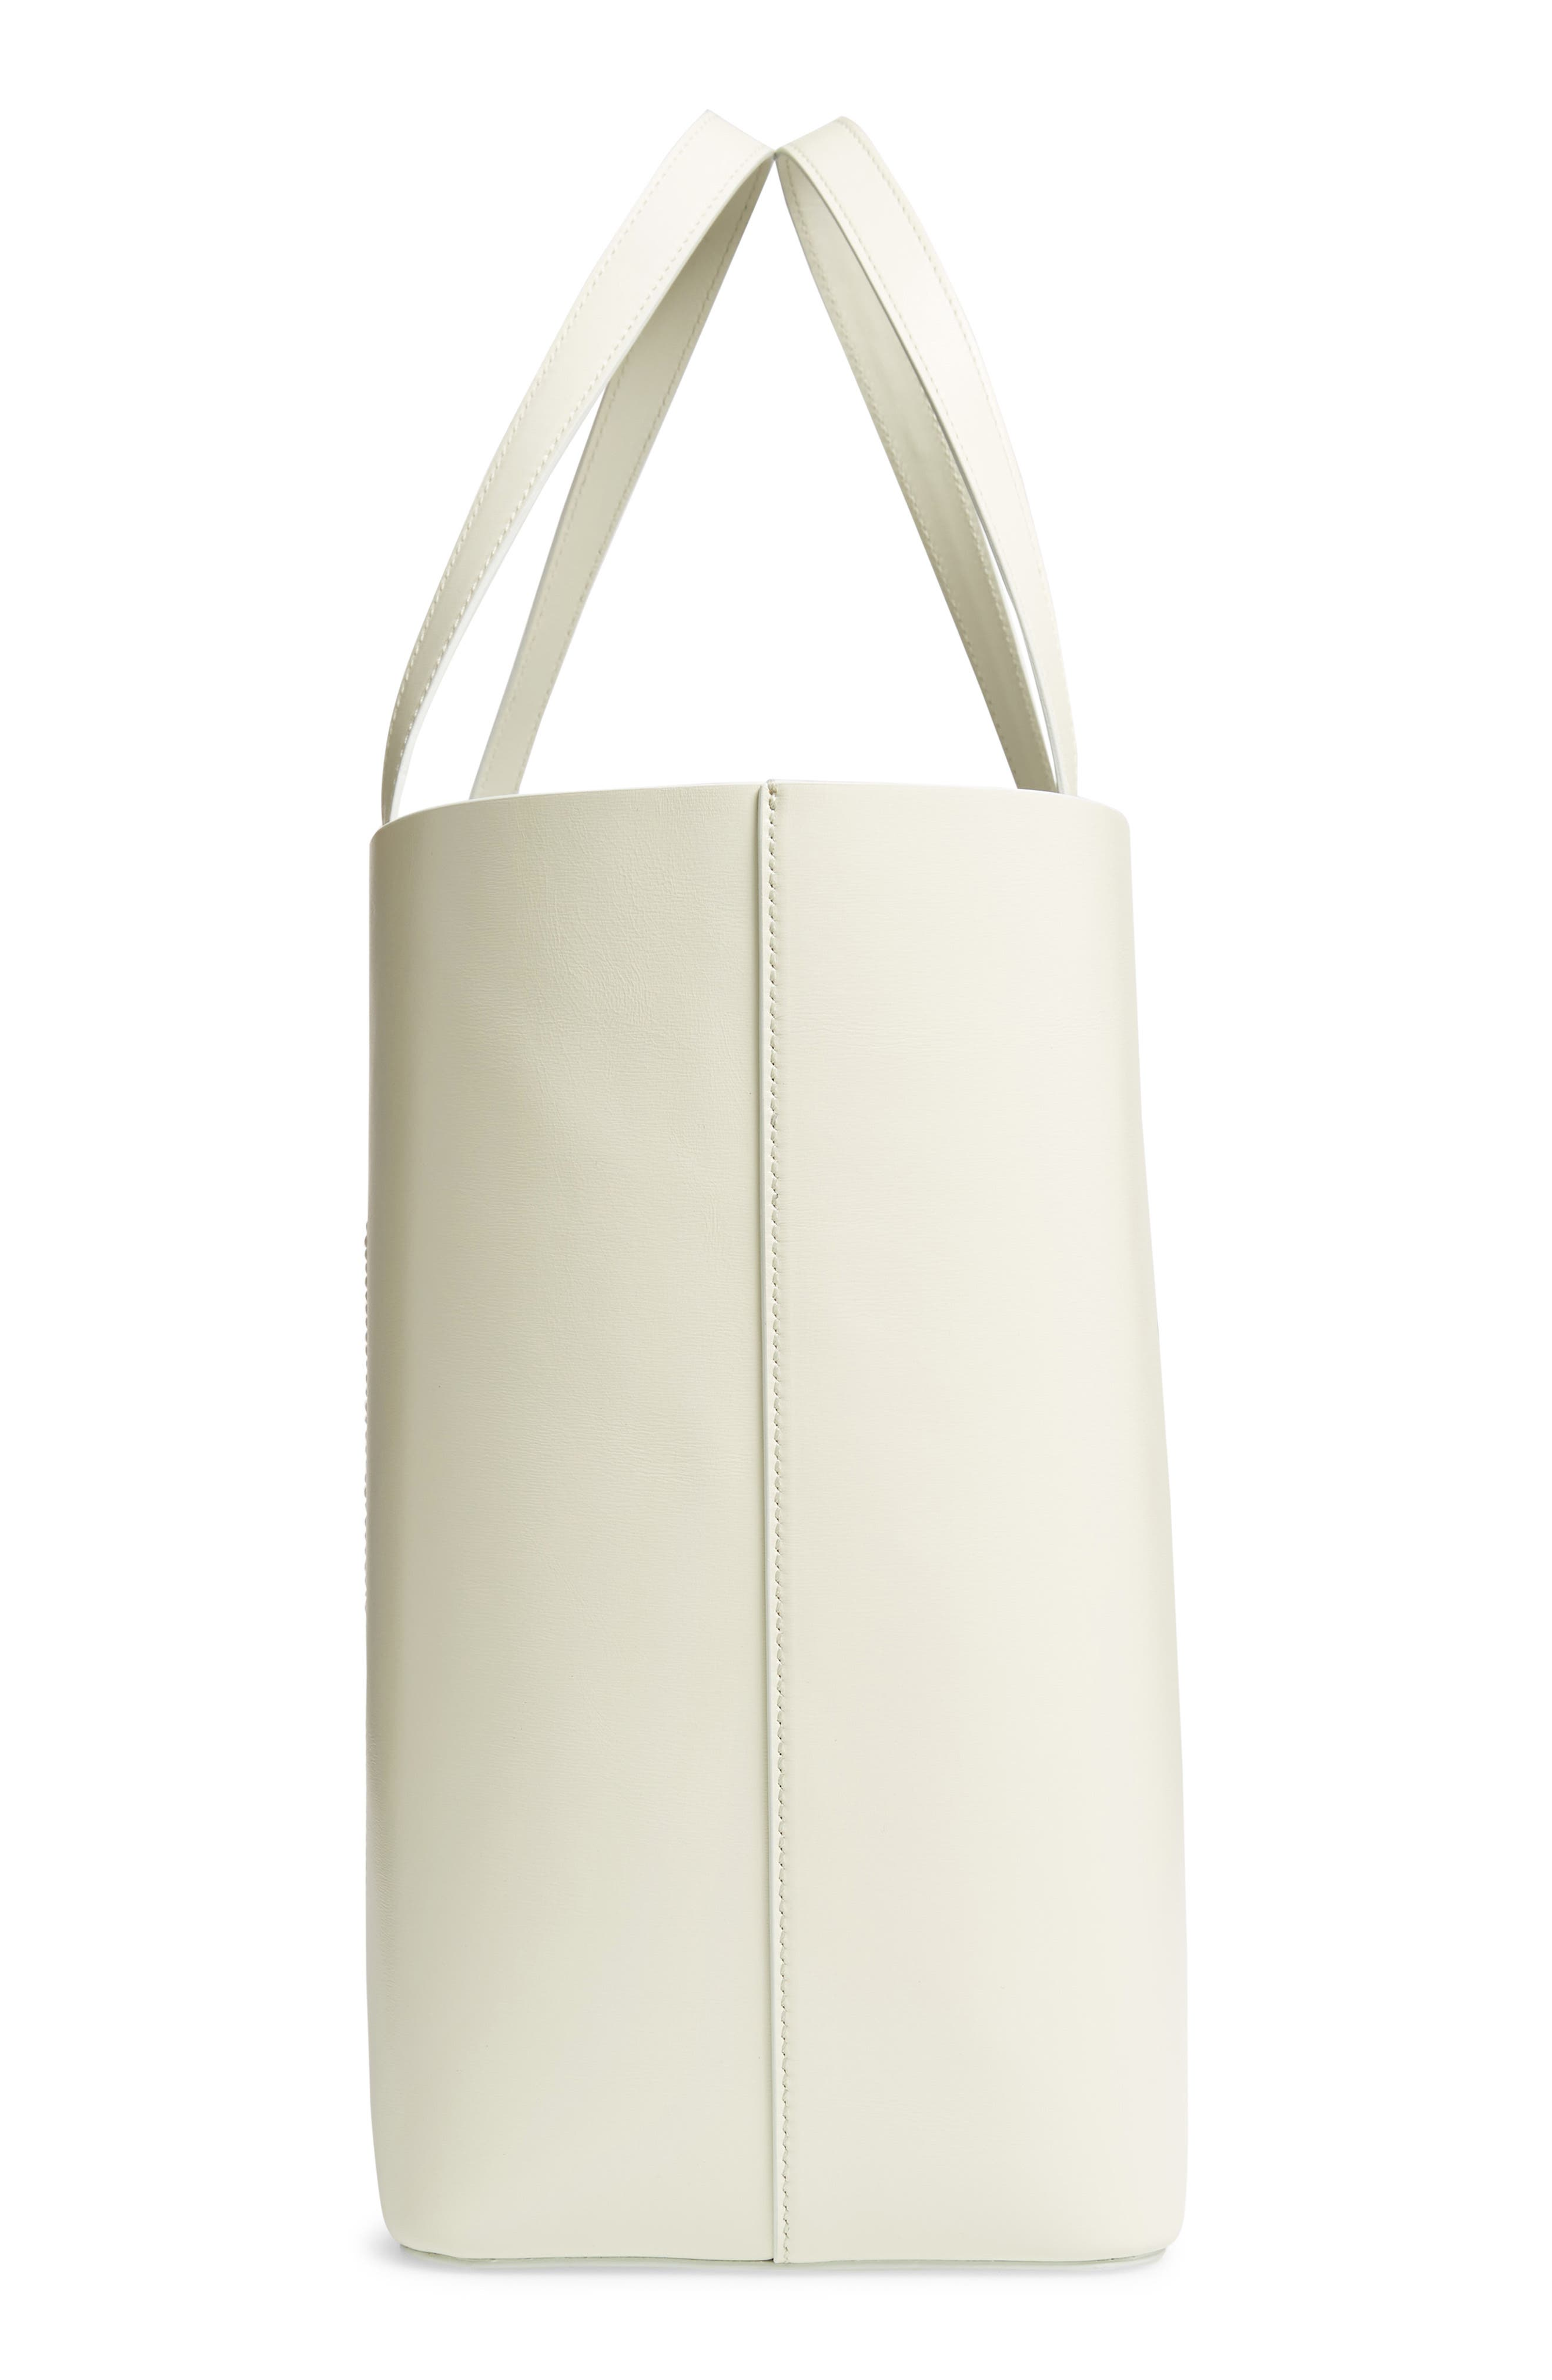 CALVIN KLEIN 205W39NYC,                             Road Runner East/West Leather Tote,                             Alternate thumbnail 5, color,                             053